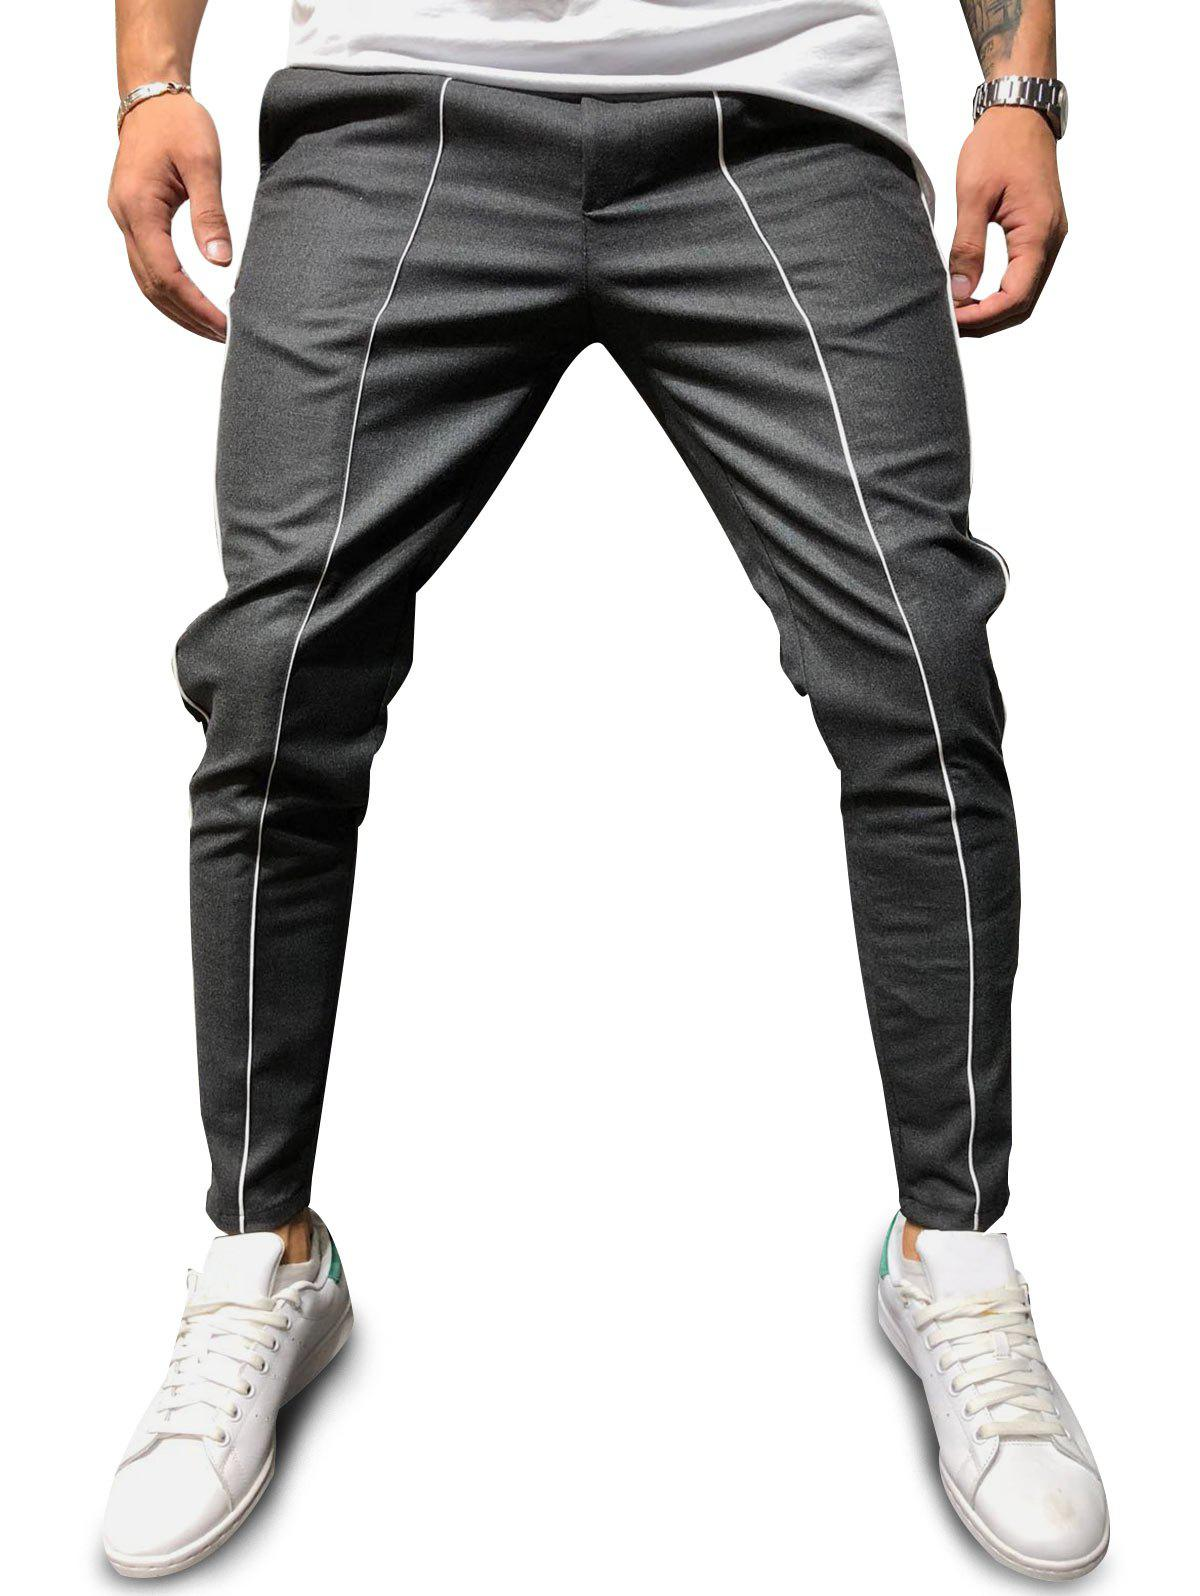 Contrast Piped Casual Pencil Pants - GRAY 2XL